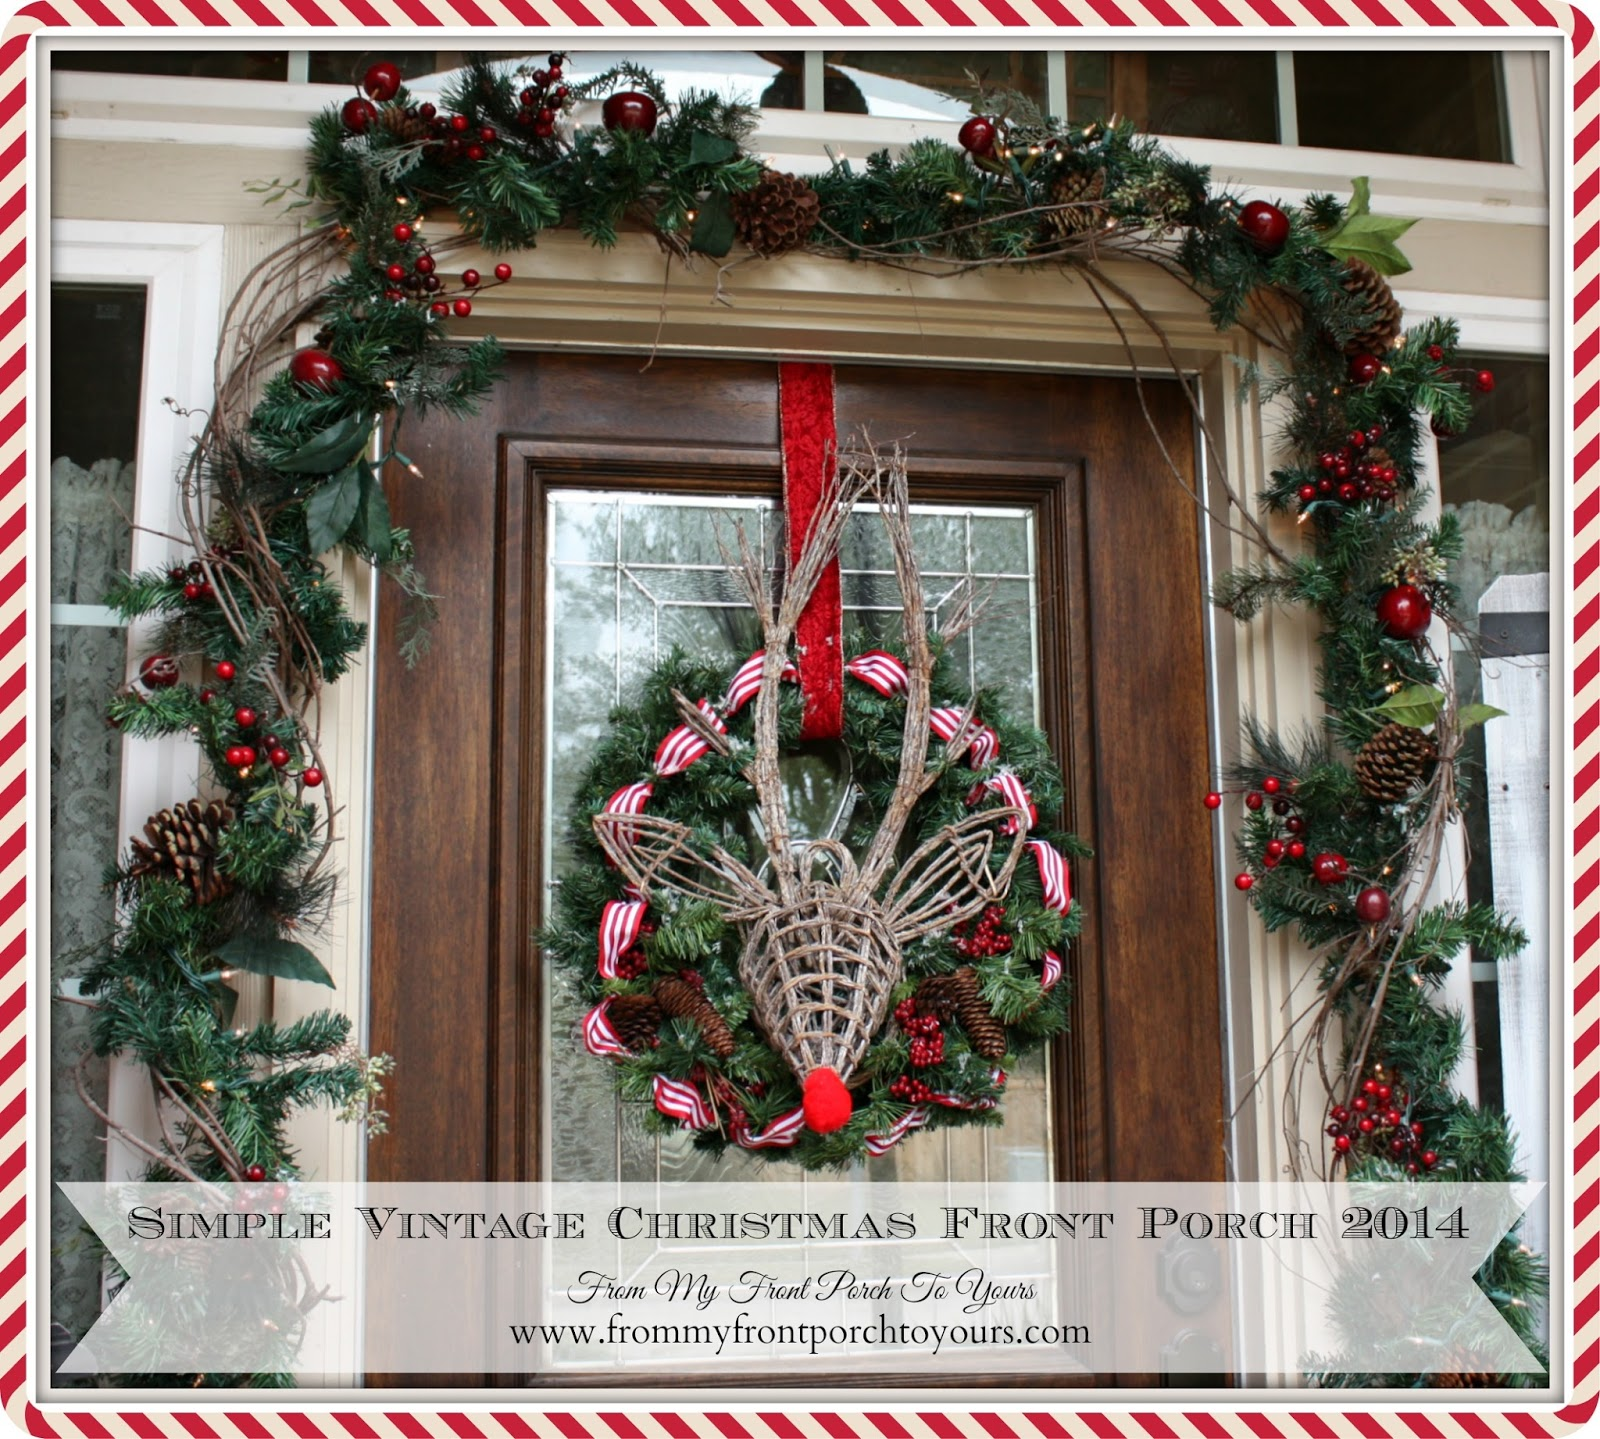 Christmas Front Porch from my front porch to yours: simple vintage christmas front porch